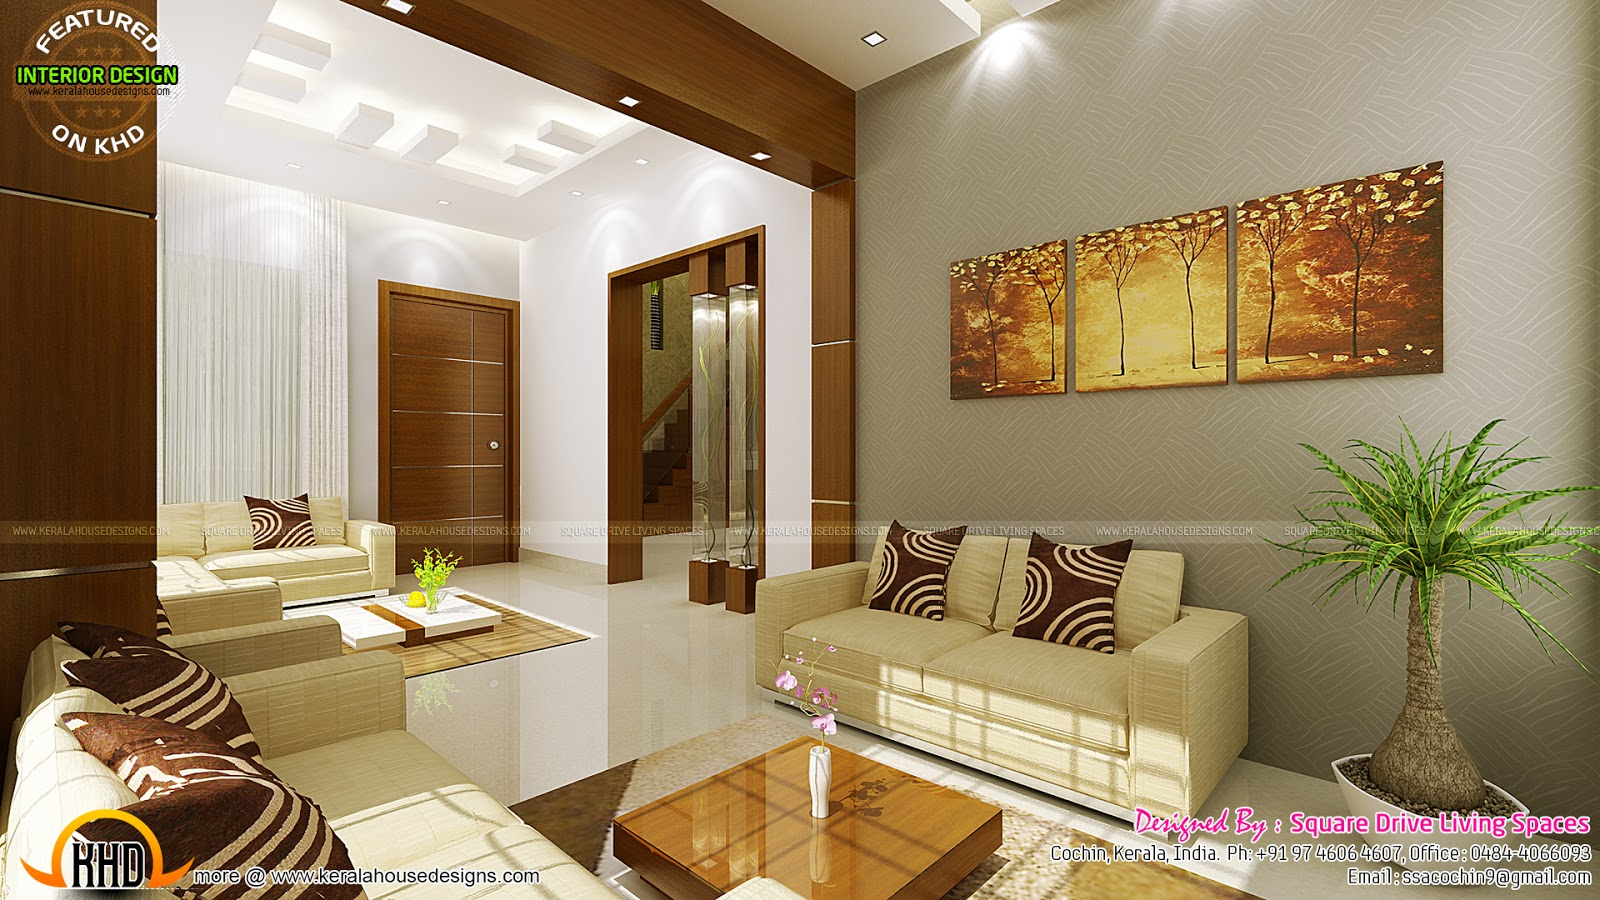 Contemporary kitchen dining and living room kerala home design and floor plans - Interior design in living room ...